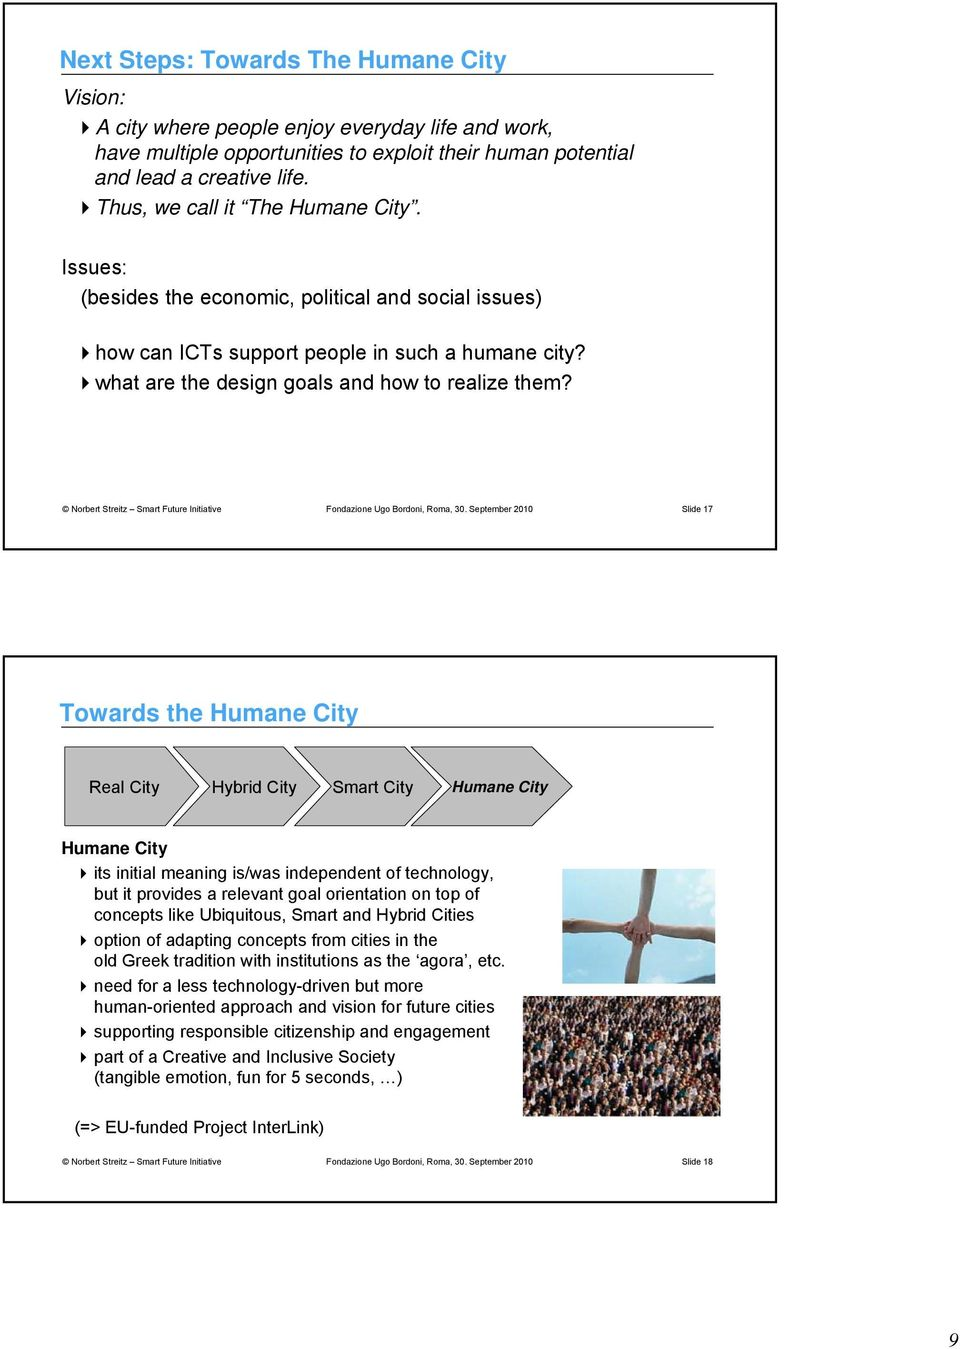 Slide 17 Towards the Humane City Real City Hybrid City Smart City Humane City Humane City its initial meaning is/was independent of technology, but it provides a relevant goal orientation on top of